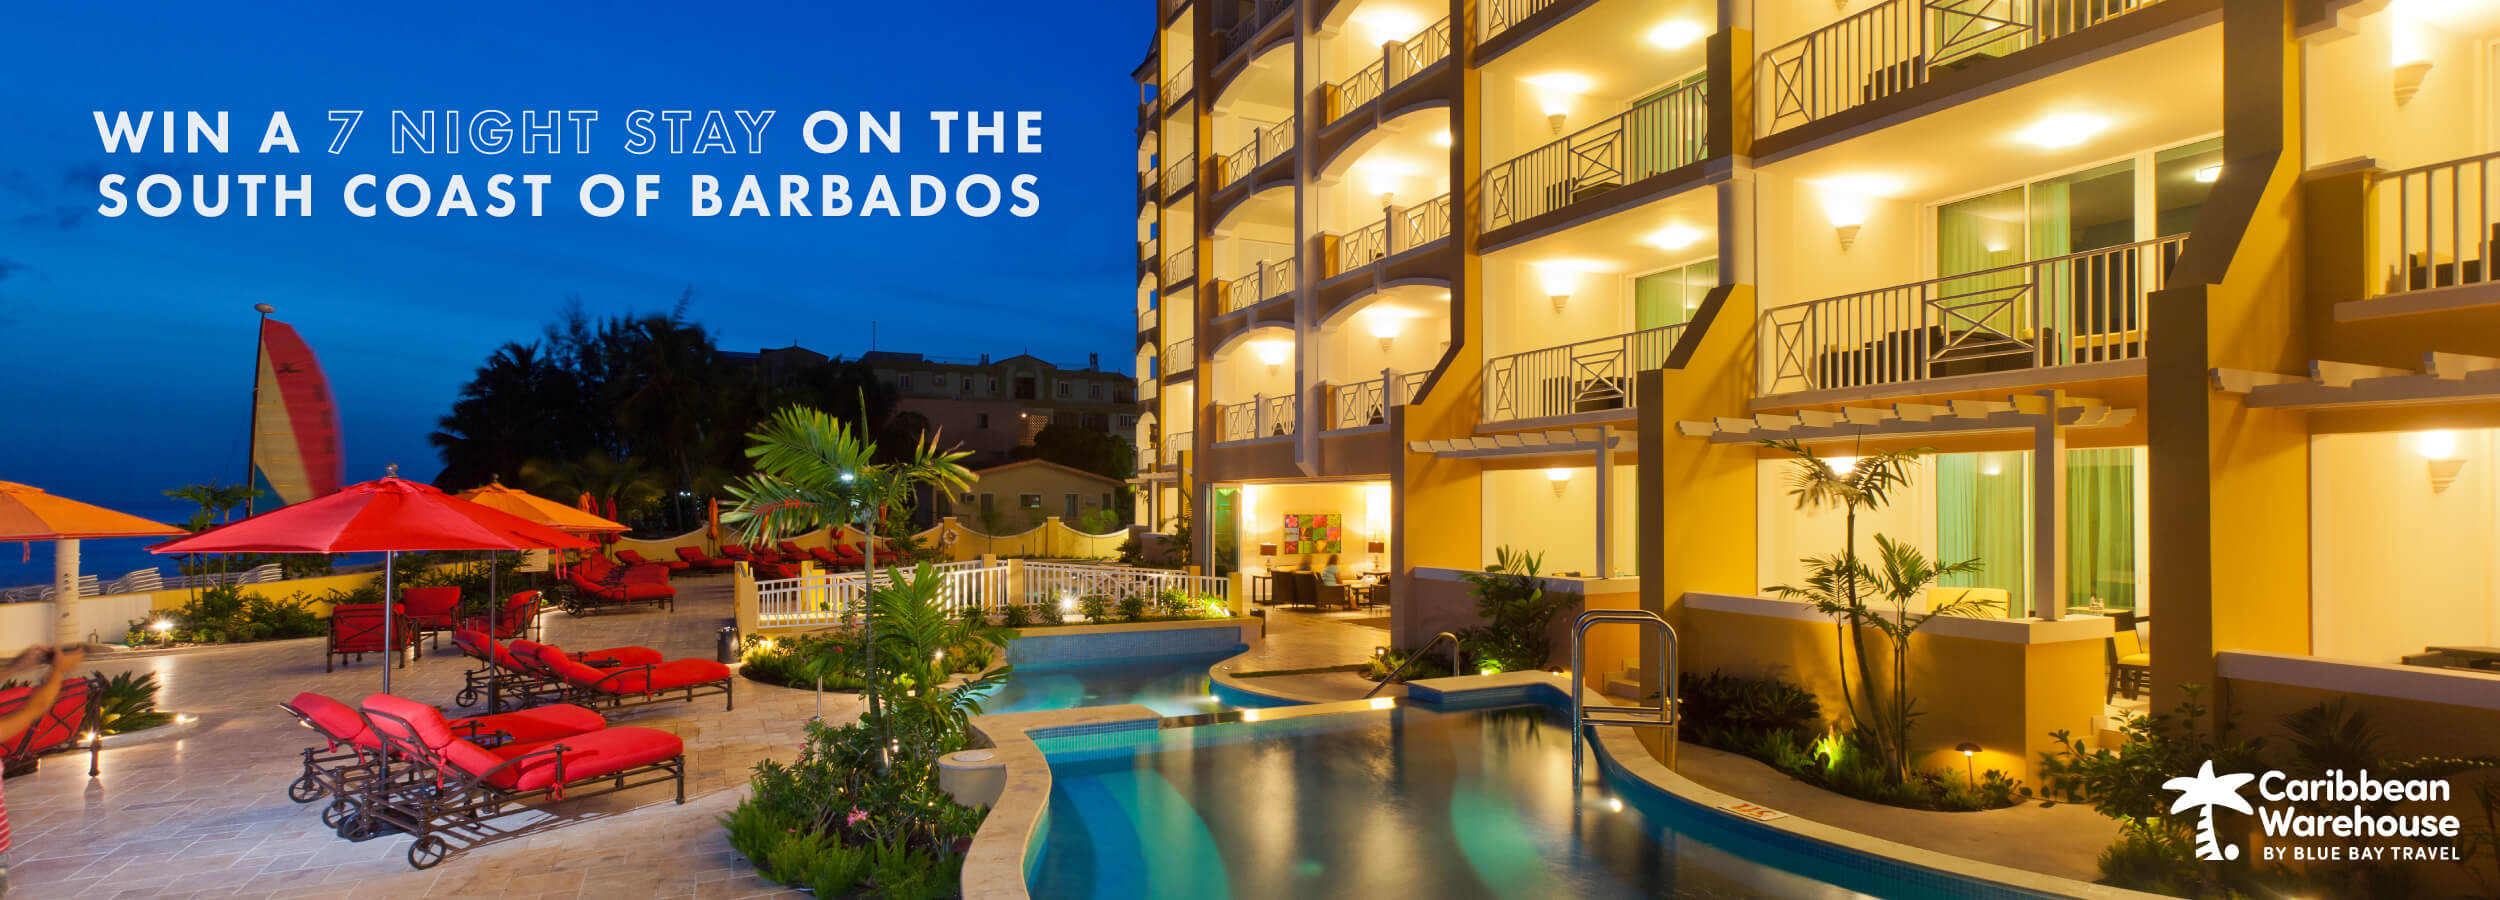 Win a 7 Night Stay on the South Coast of Barbados